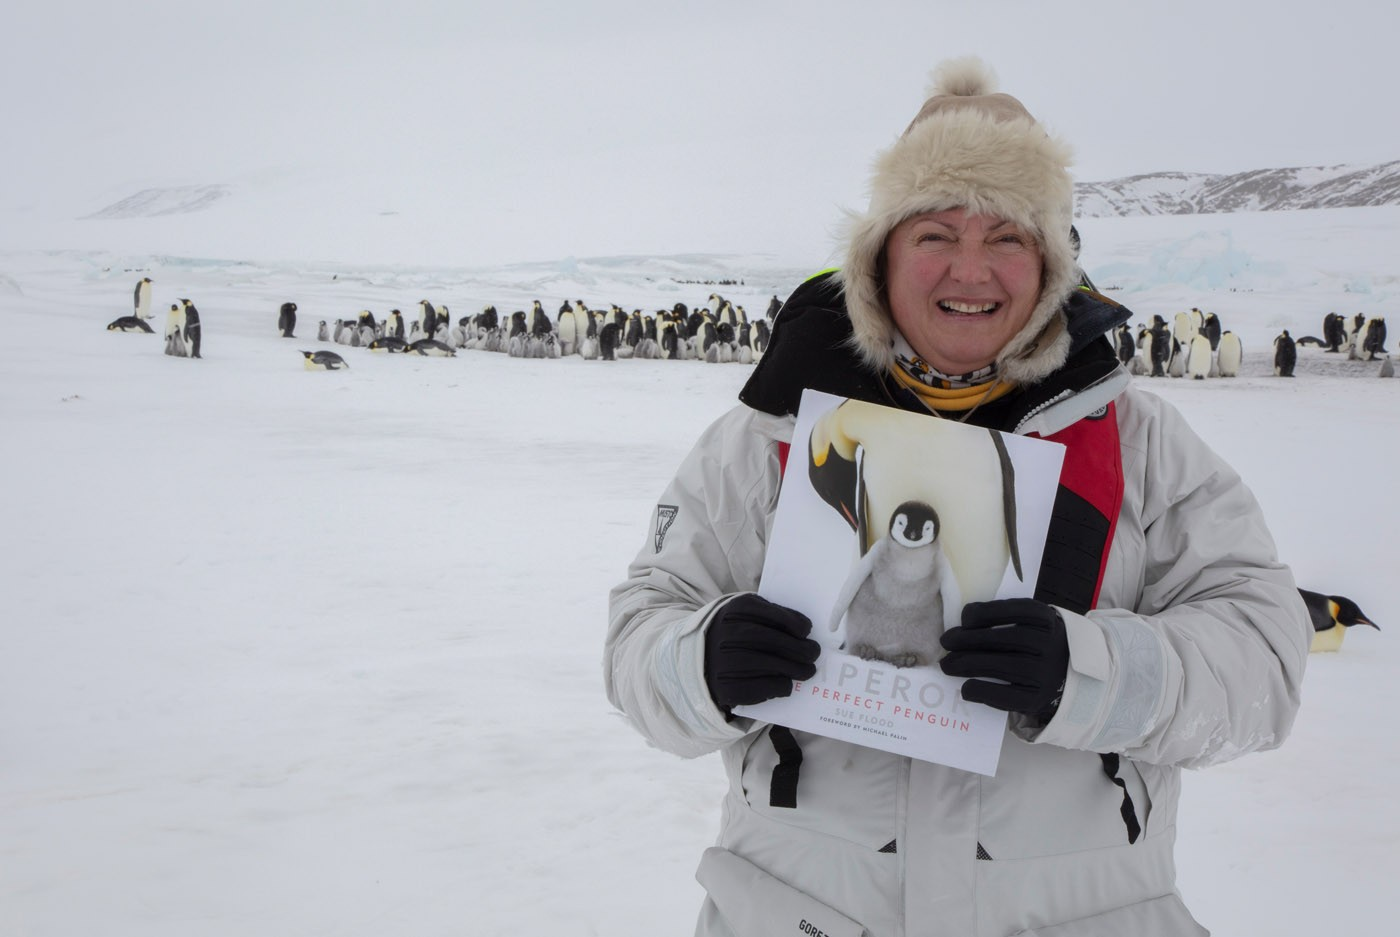 Sue with book and penguins